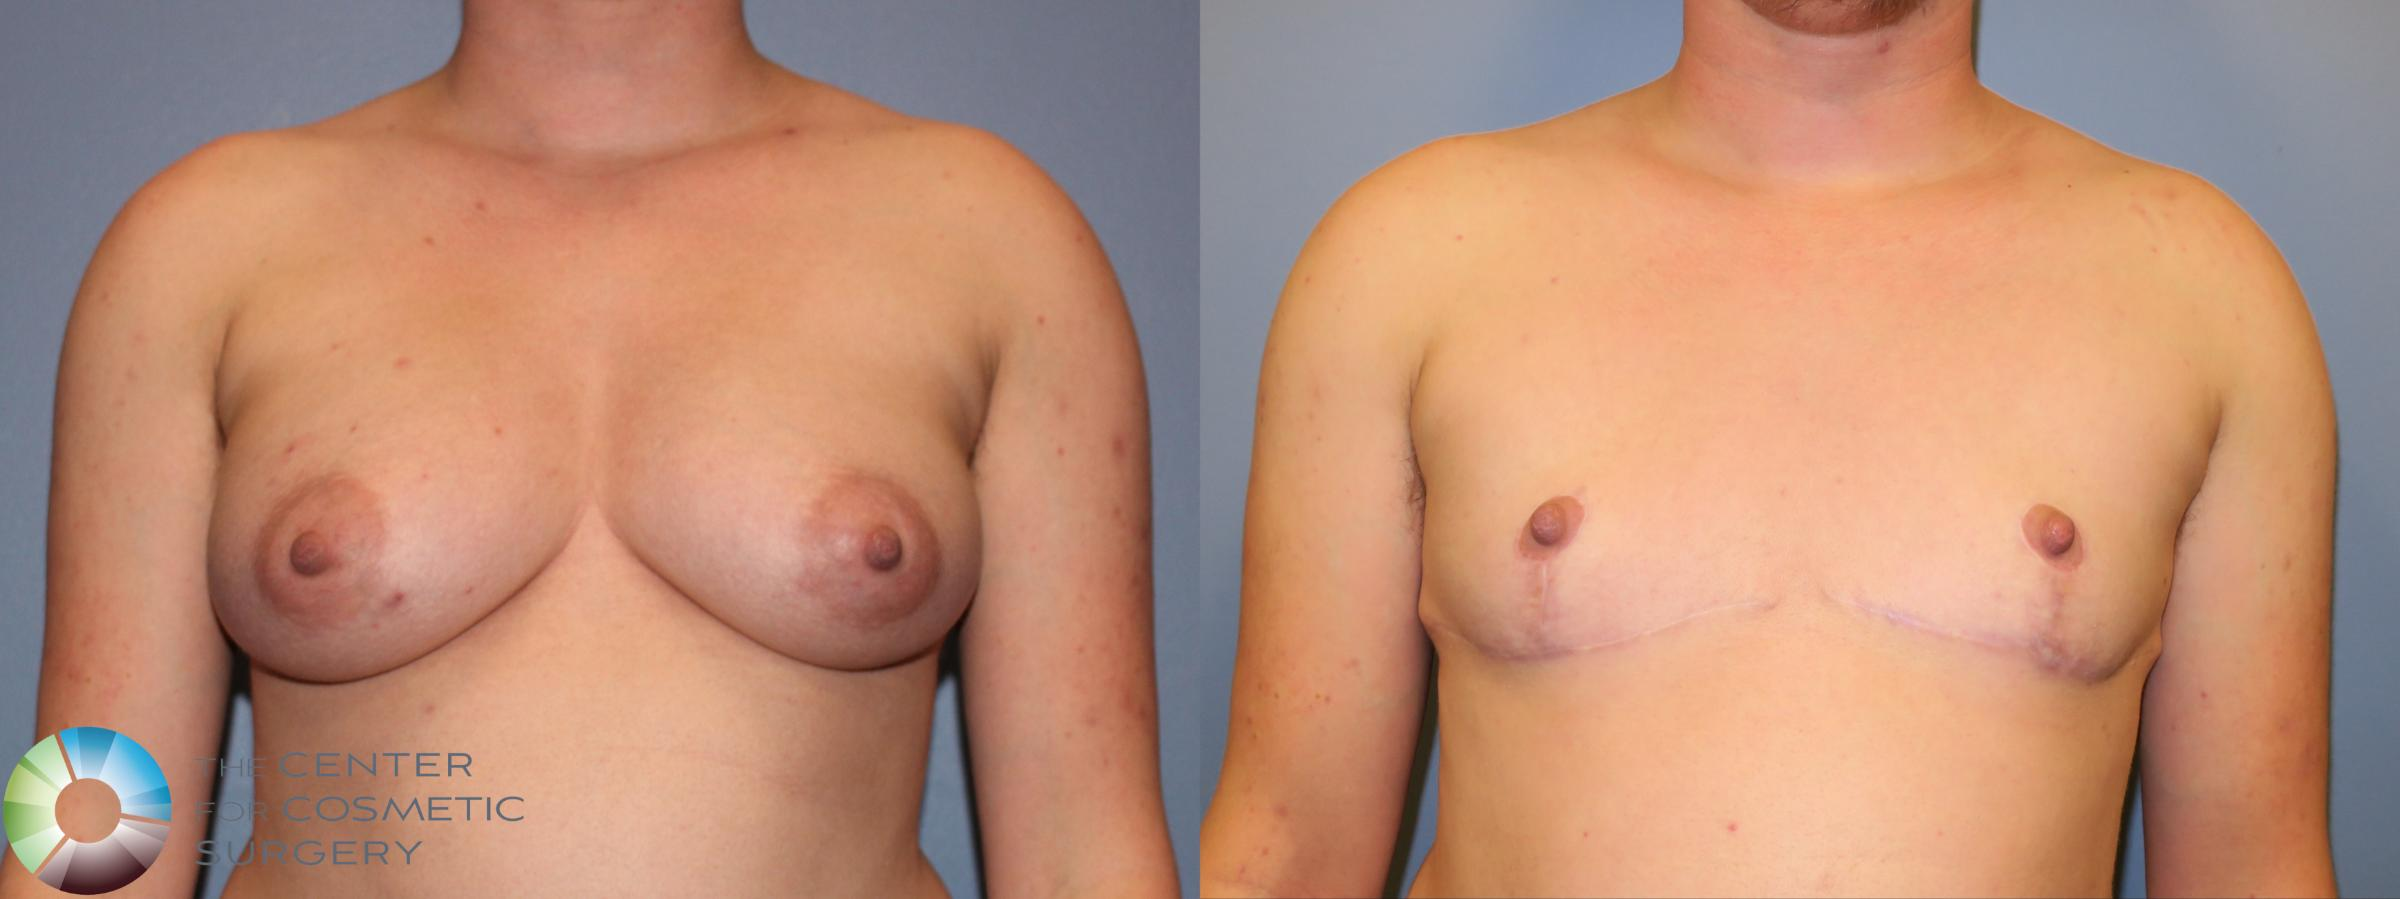 Best Top Surgery FTM Chest Recontouring